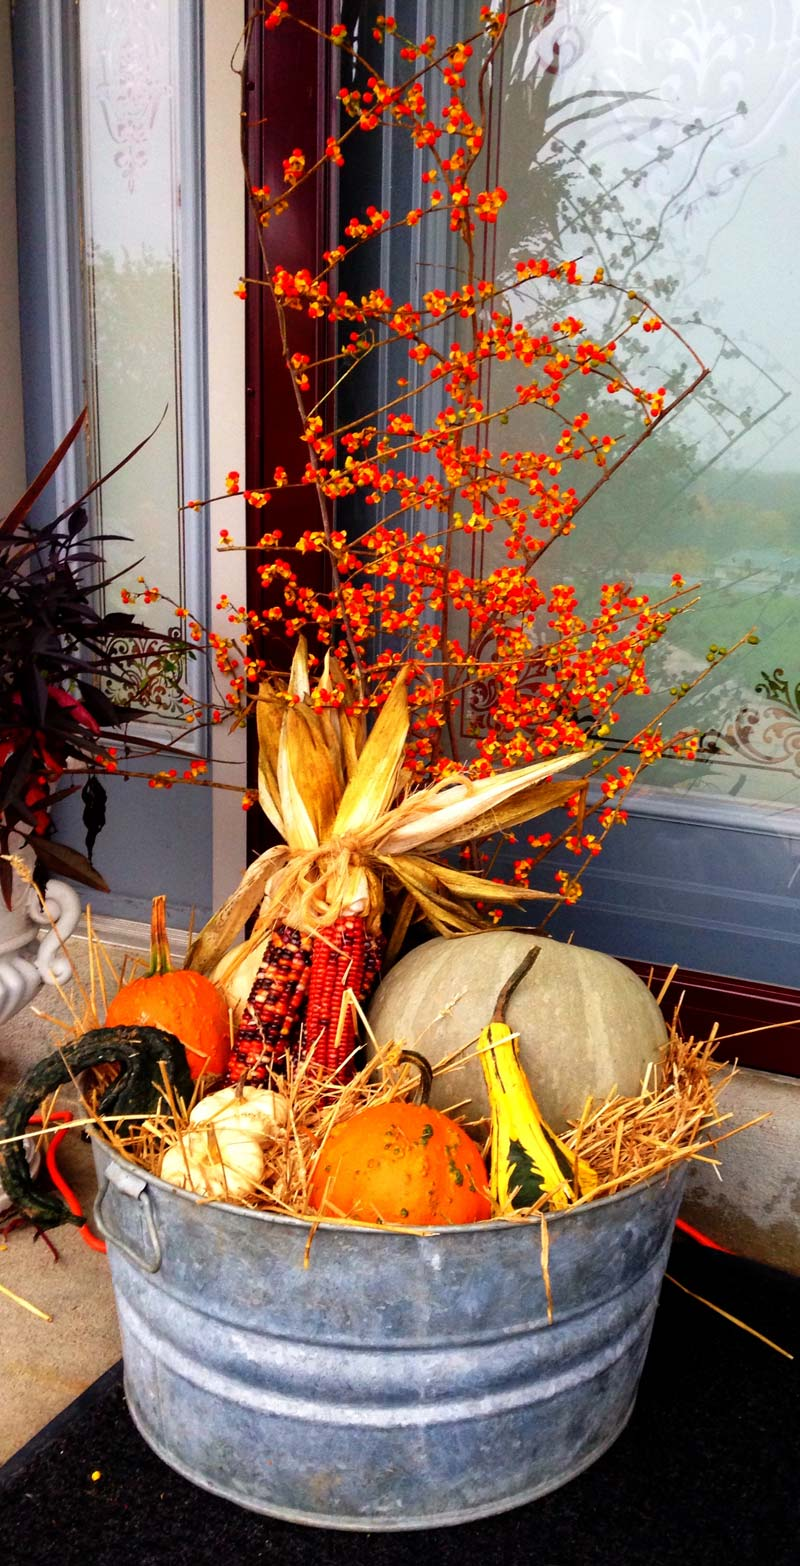 small front porch decorating ideas - easy farmhouse washtub centerpiece with colorful fall gords, pumpkins, corn, and fall bushes #frontporchideas #outdoorfalldecoratingideas #smallfrontporchdecoratingideas